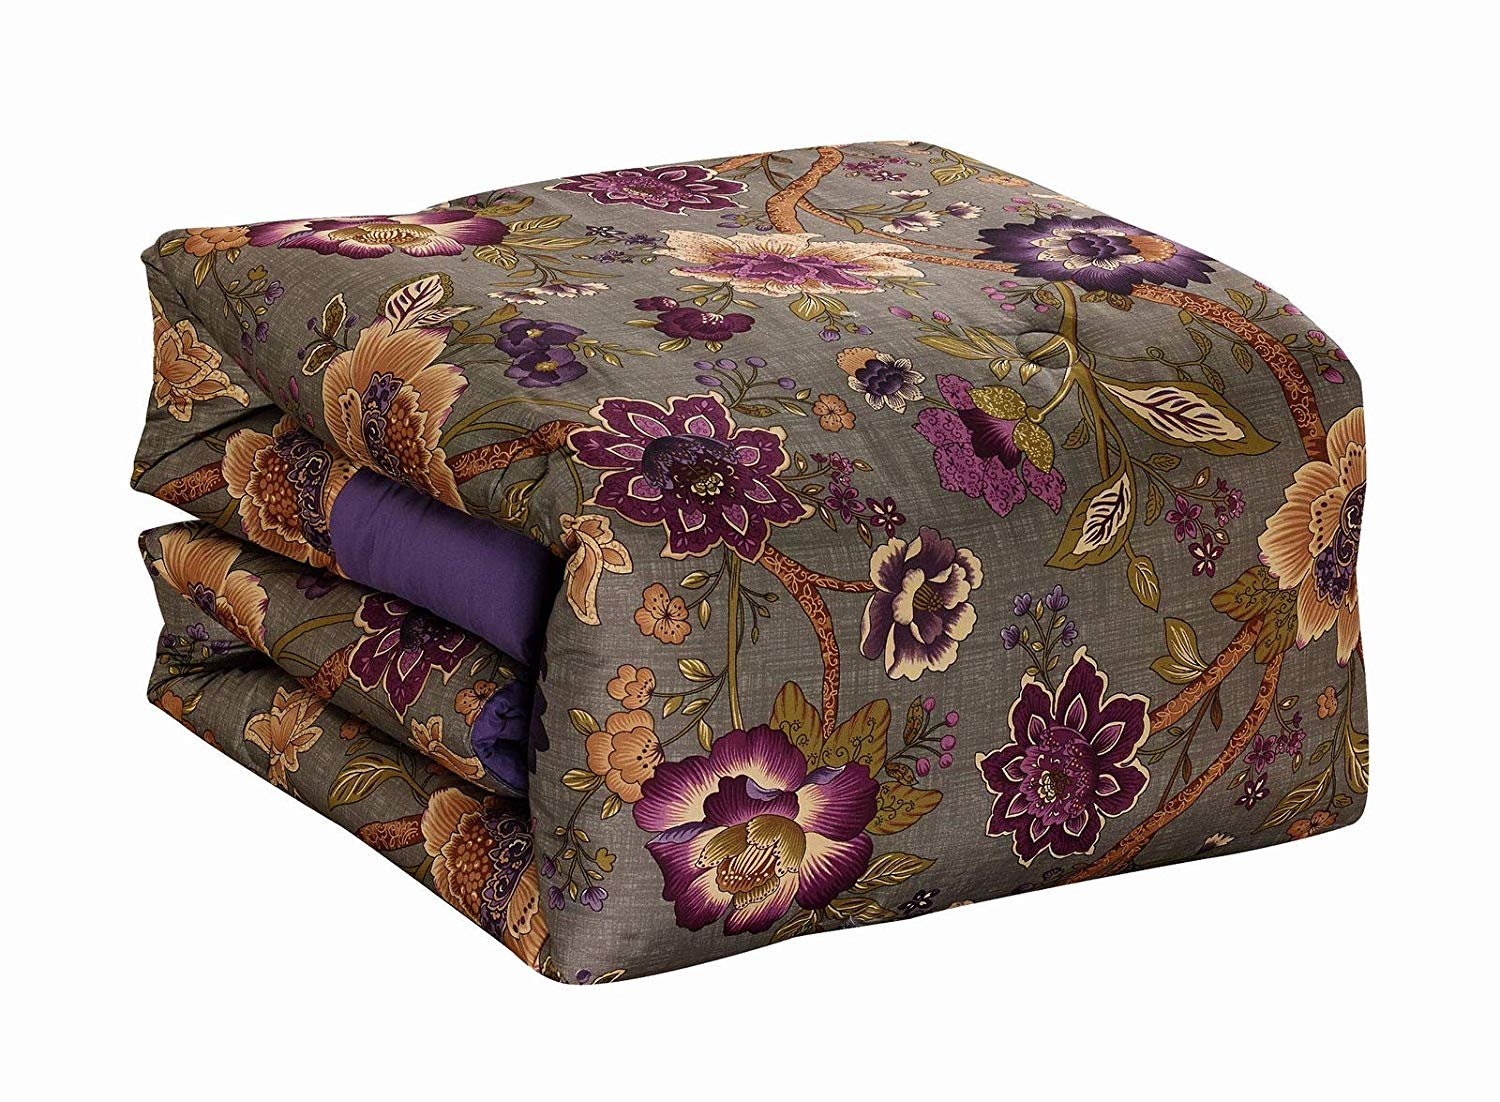 JedaJeda New 7-Piece Queen Size Cover Duvet Printed Floral Comforter Set Clay Gold Gray Purple Flower